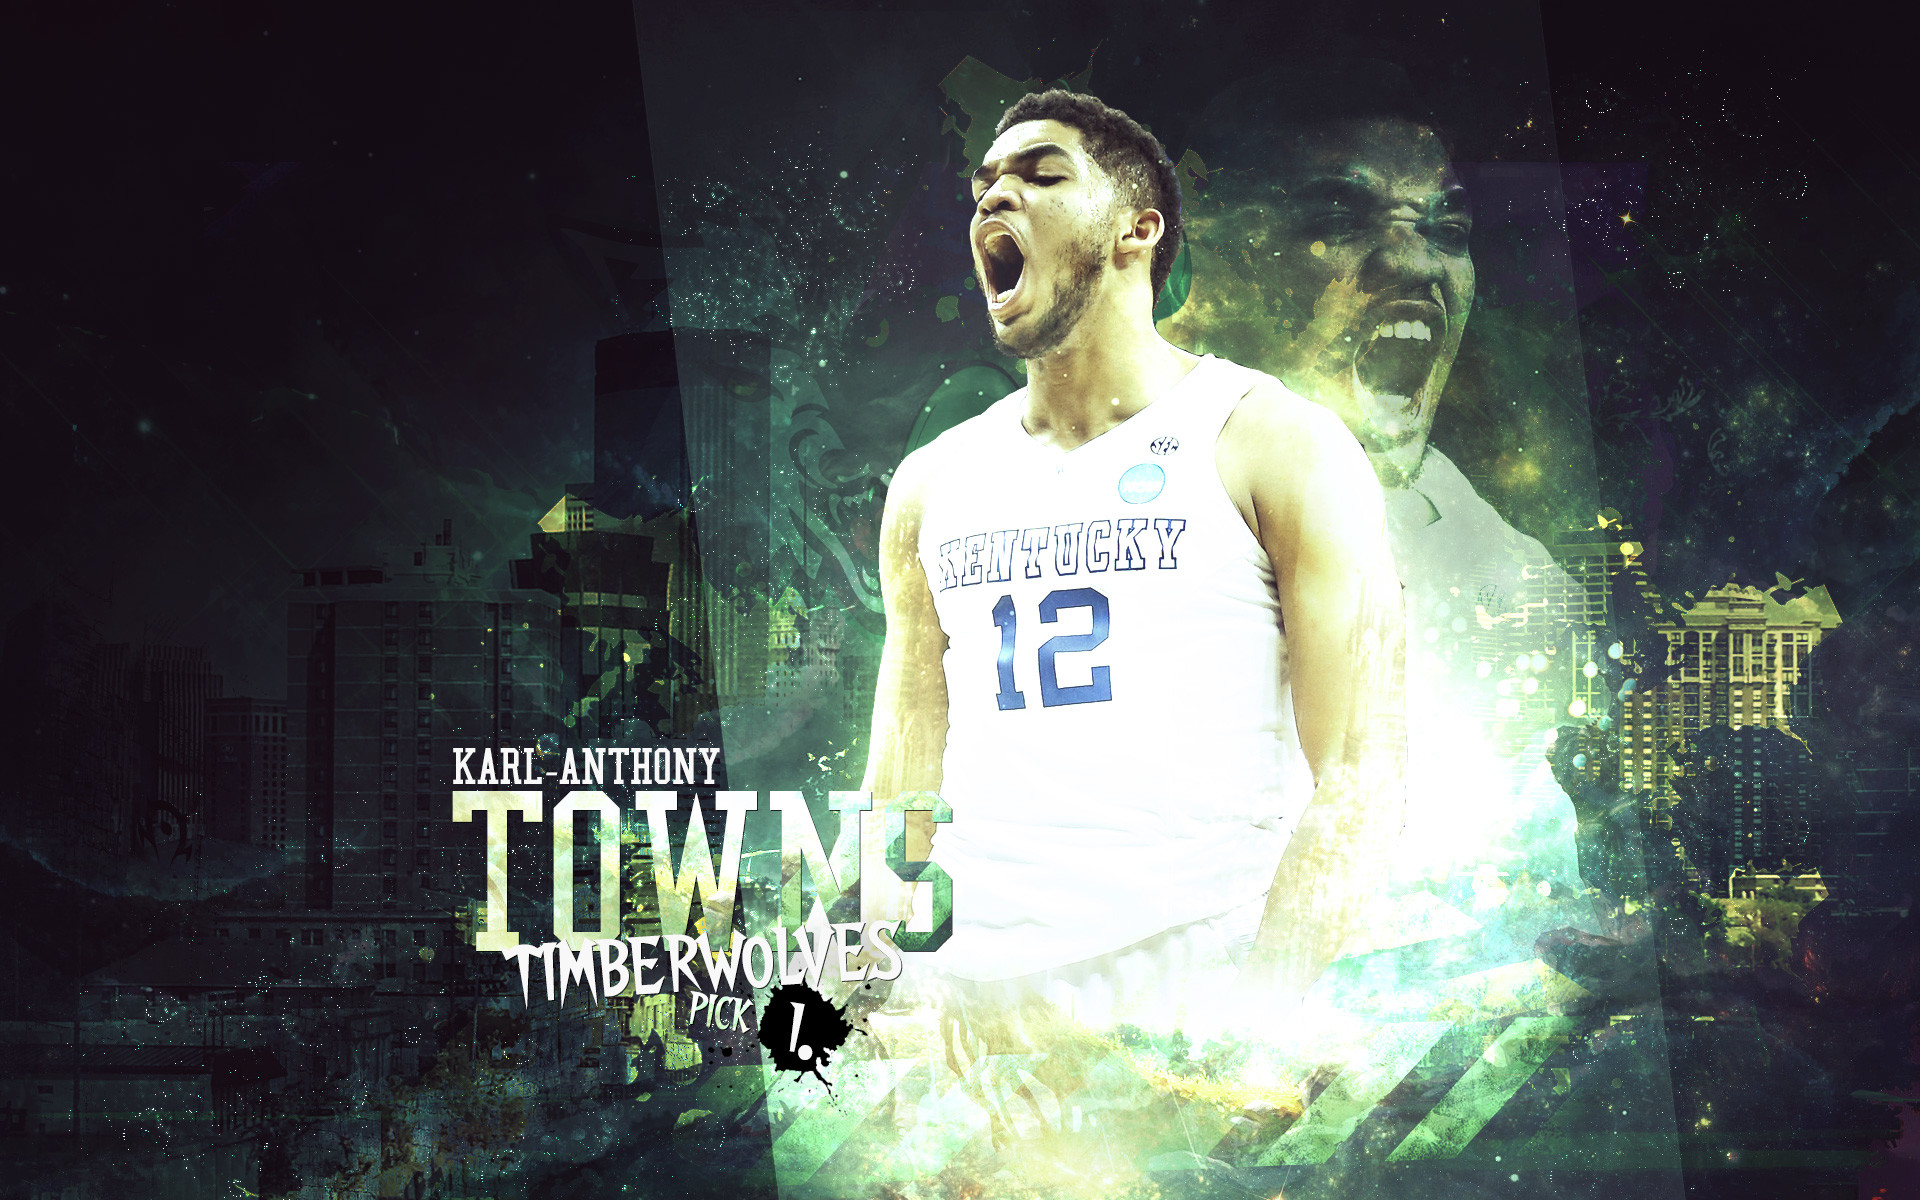 1920x1200 Karl-Anthony Towns Wildcats 2015 1920×1200 Wallpaper